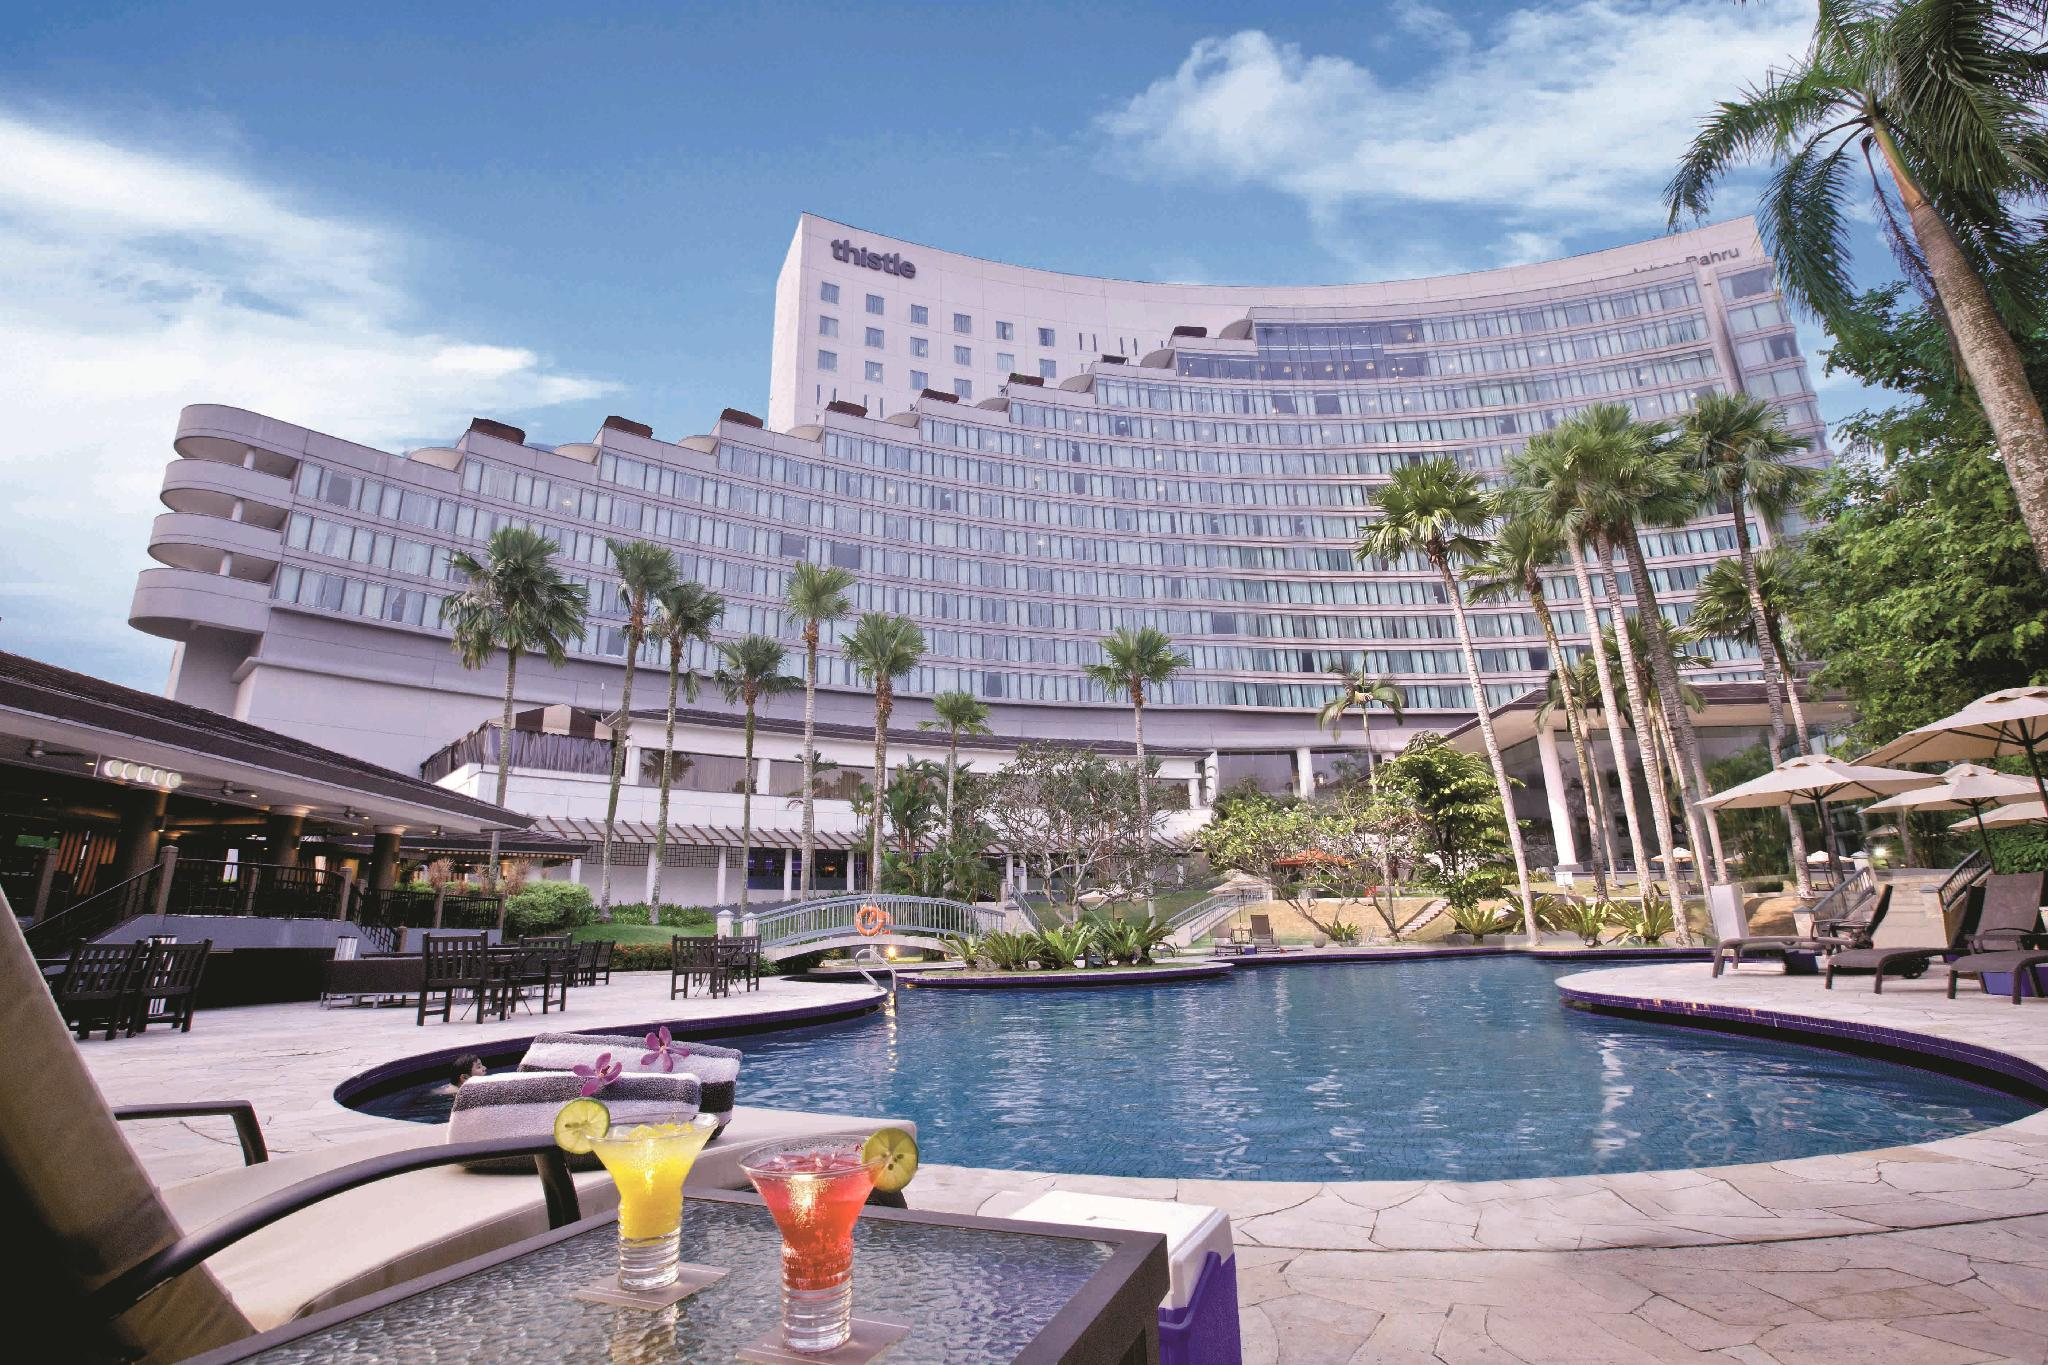 10 Best Johor Bahru Hotels Hd Pictures Reviews Of Hotels